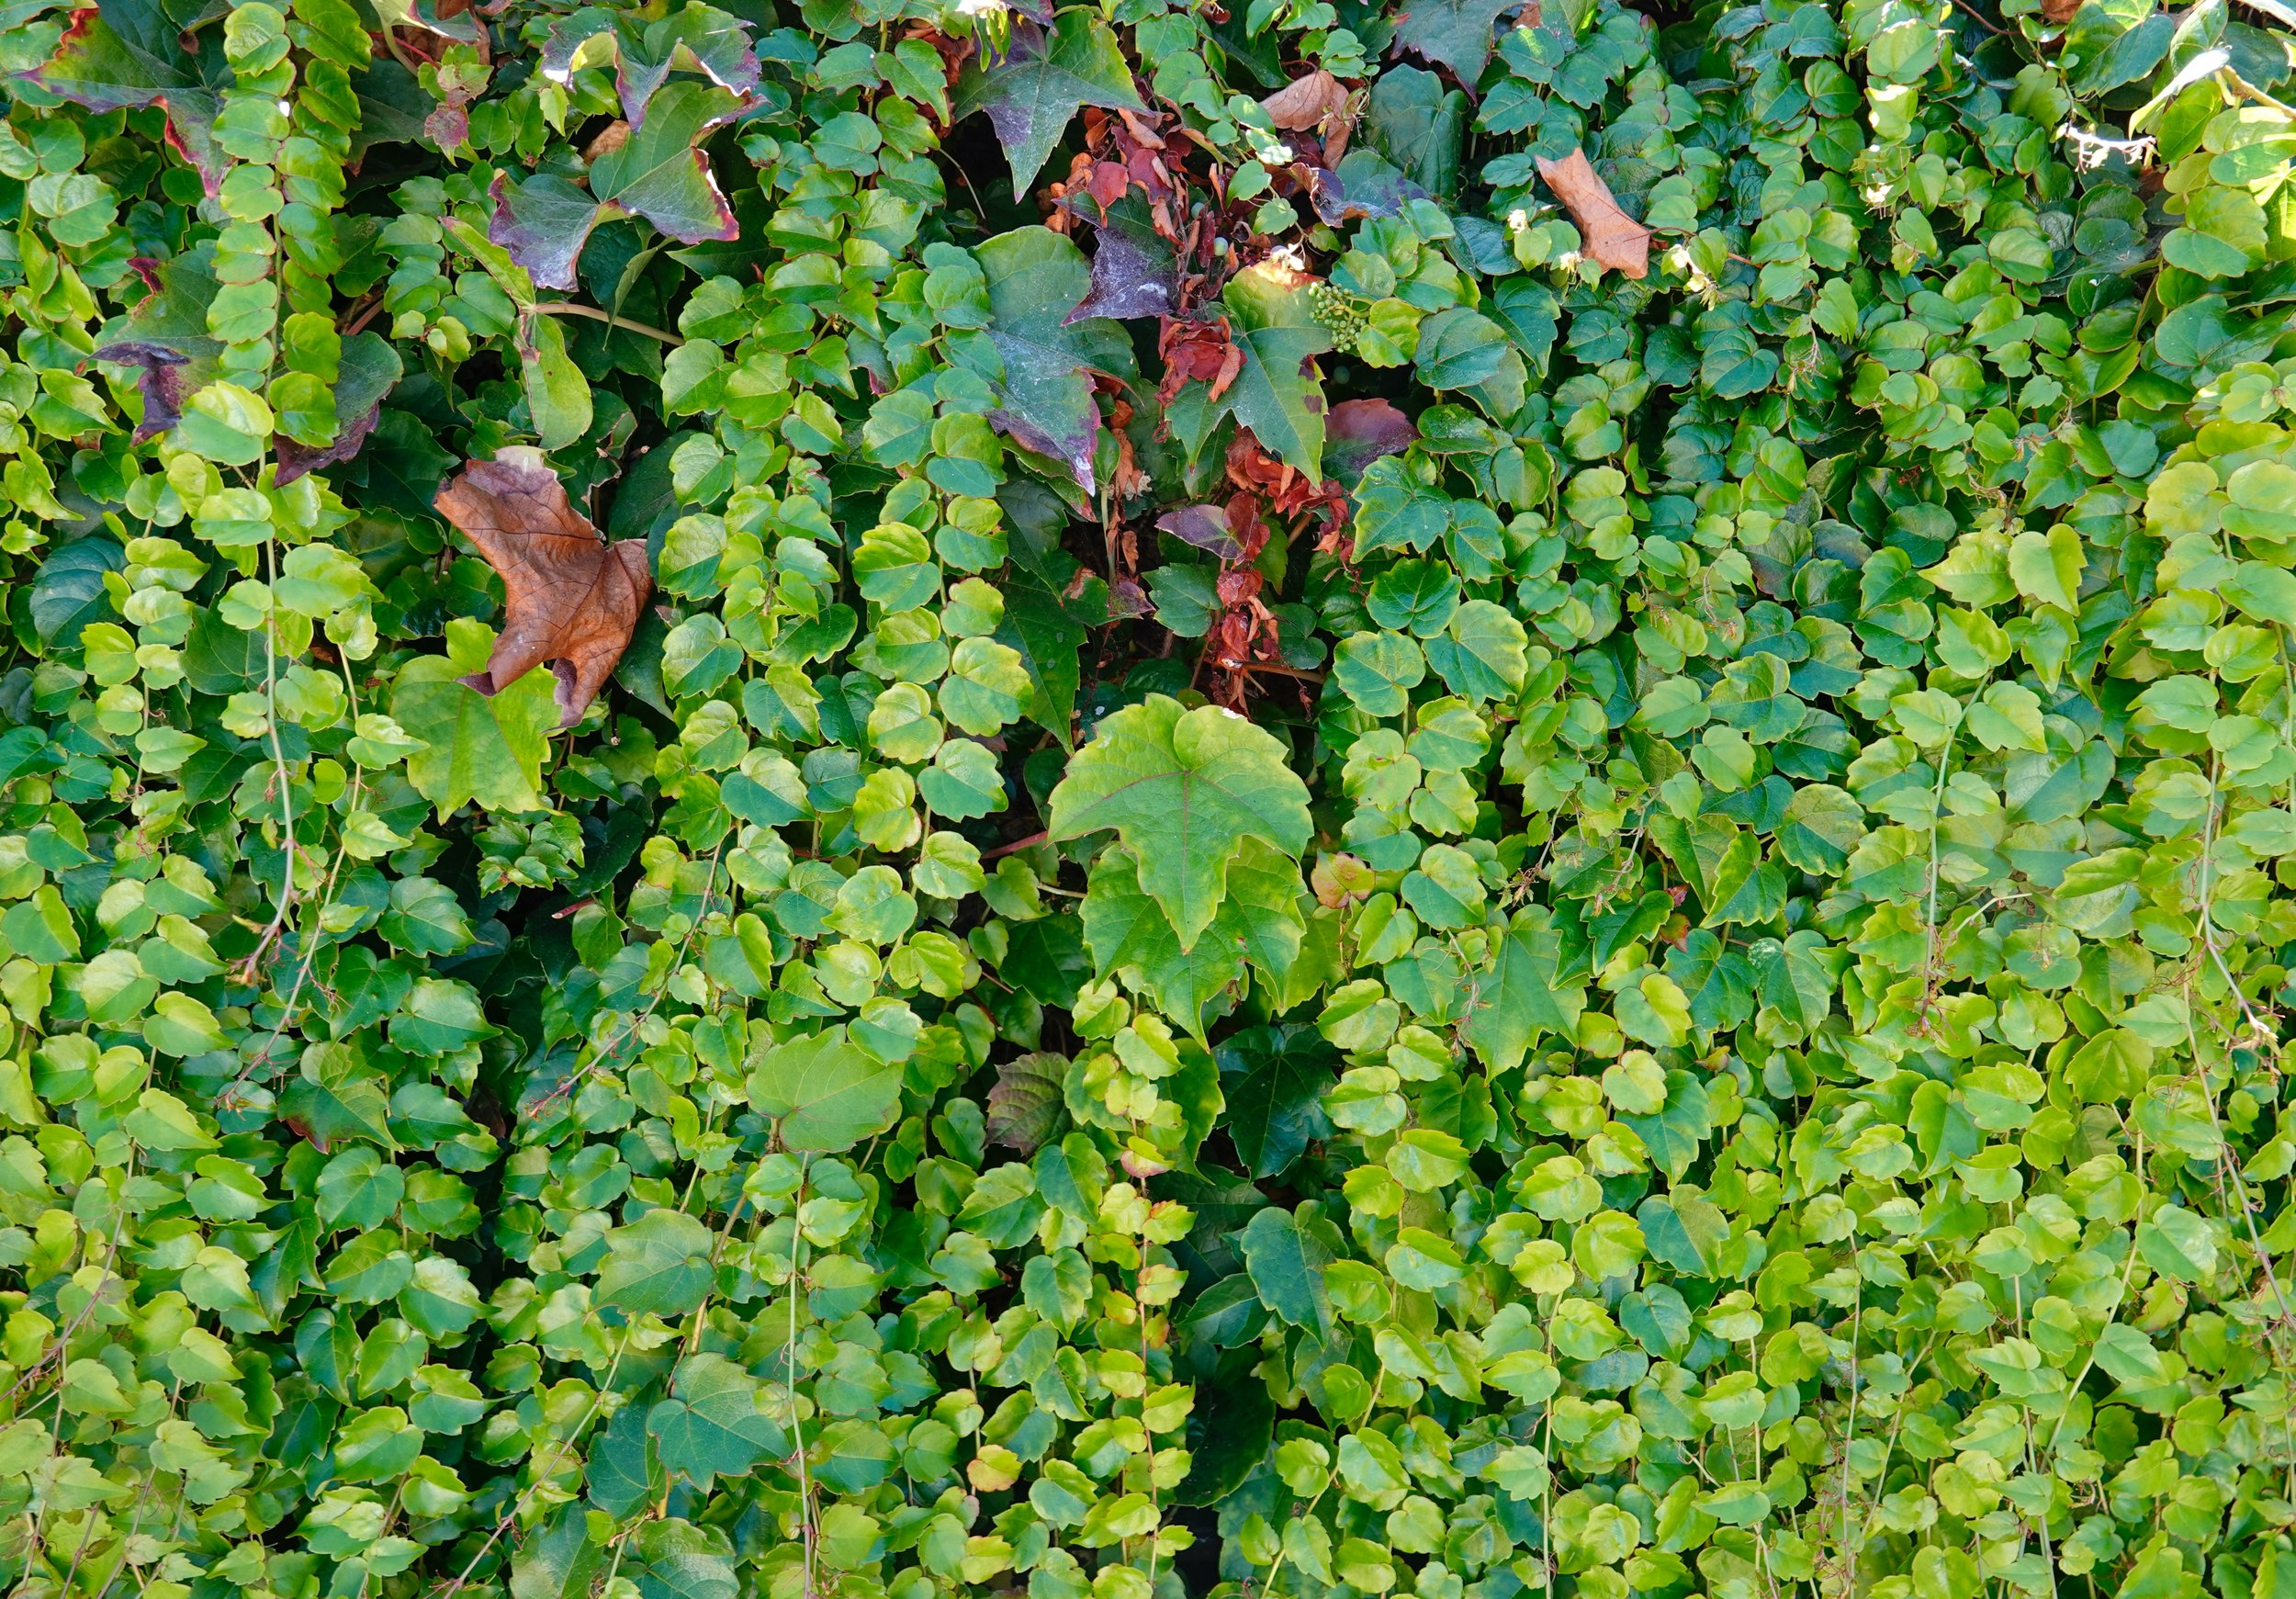 Not long ago, I was getting an IV. What was I thinking about during that time? I was daydreaming of walking past a wall of ivy.